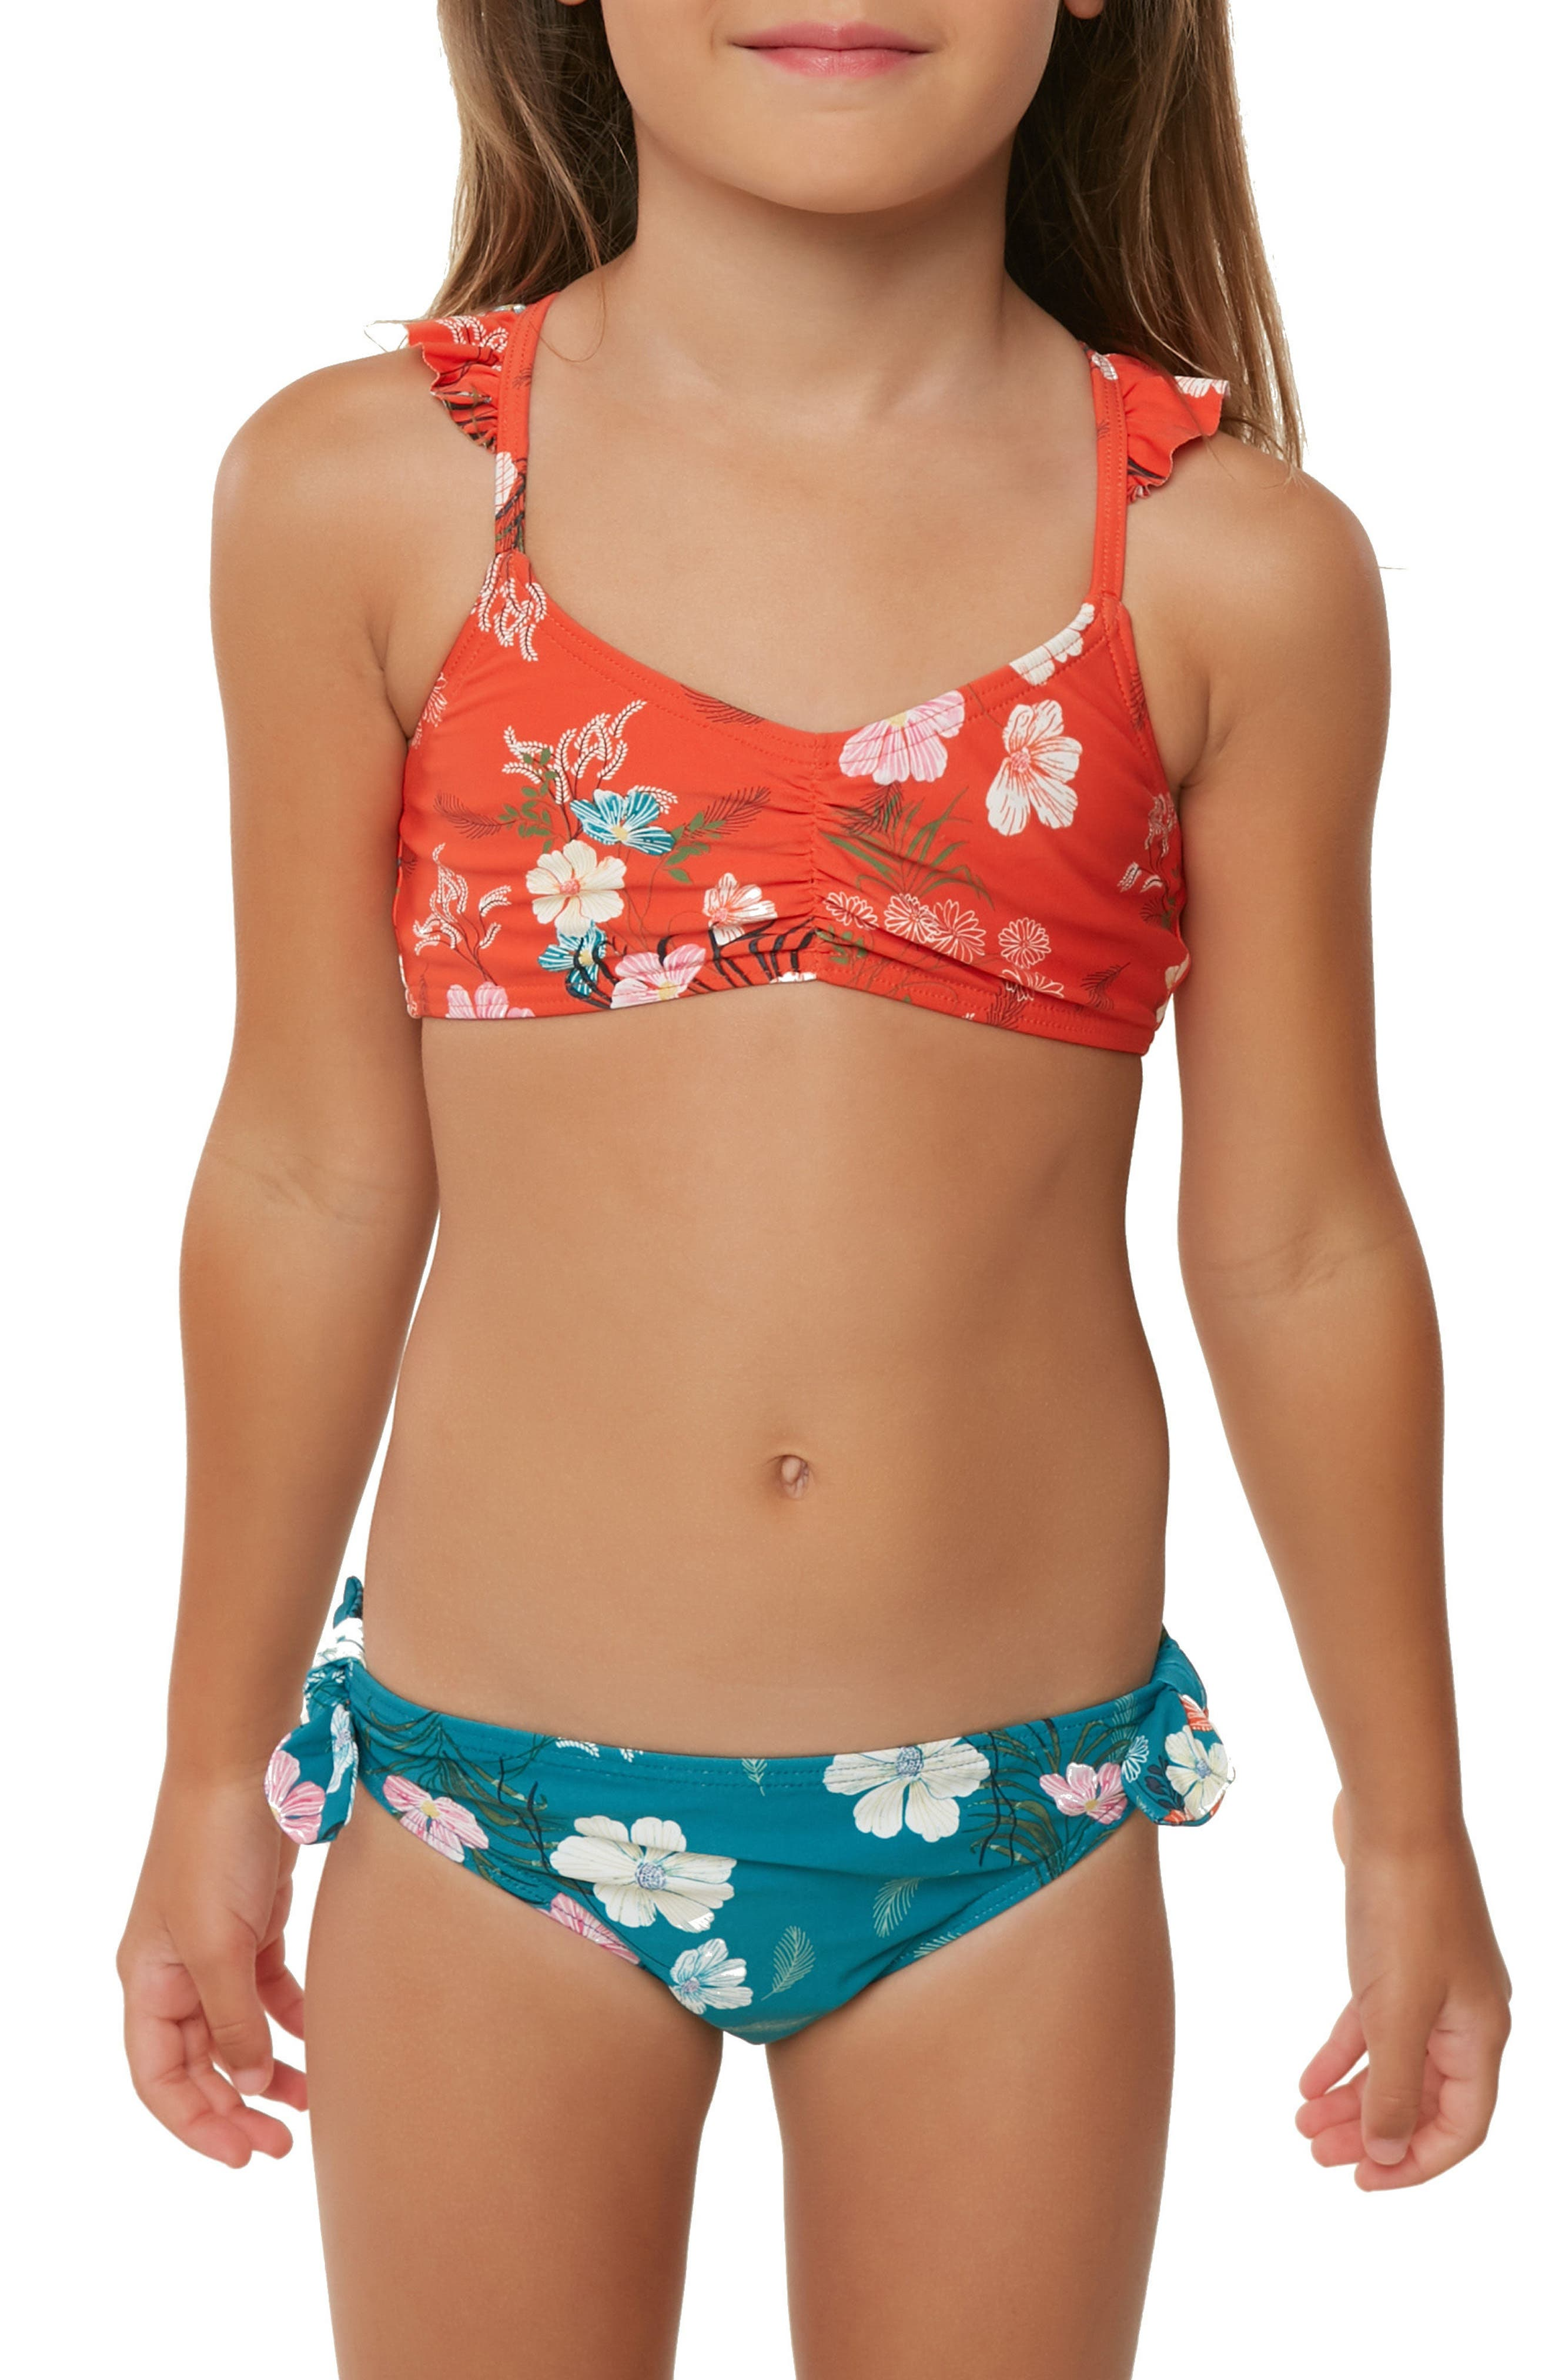 Lucy Floral Two-Piece Swimsuit,                             Alternate thumbnail 2, color,                             600